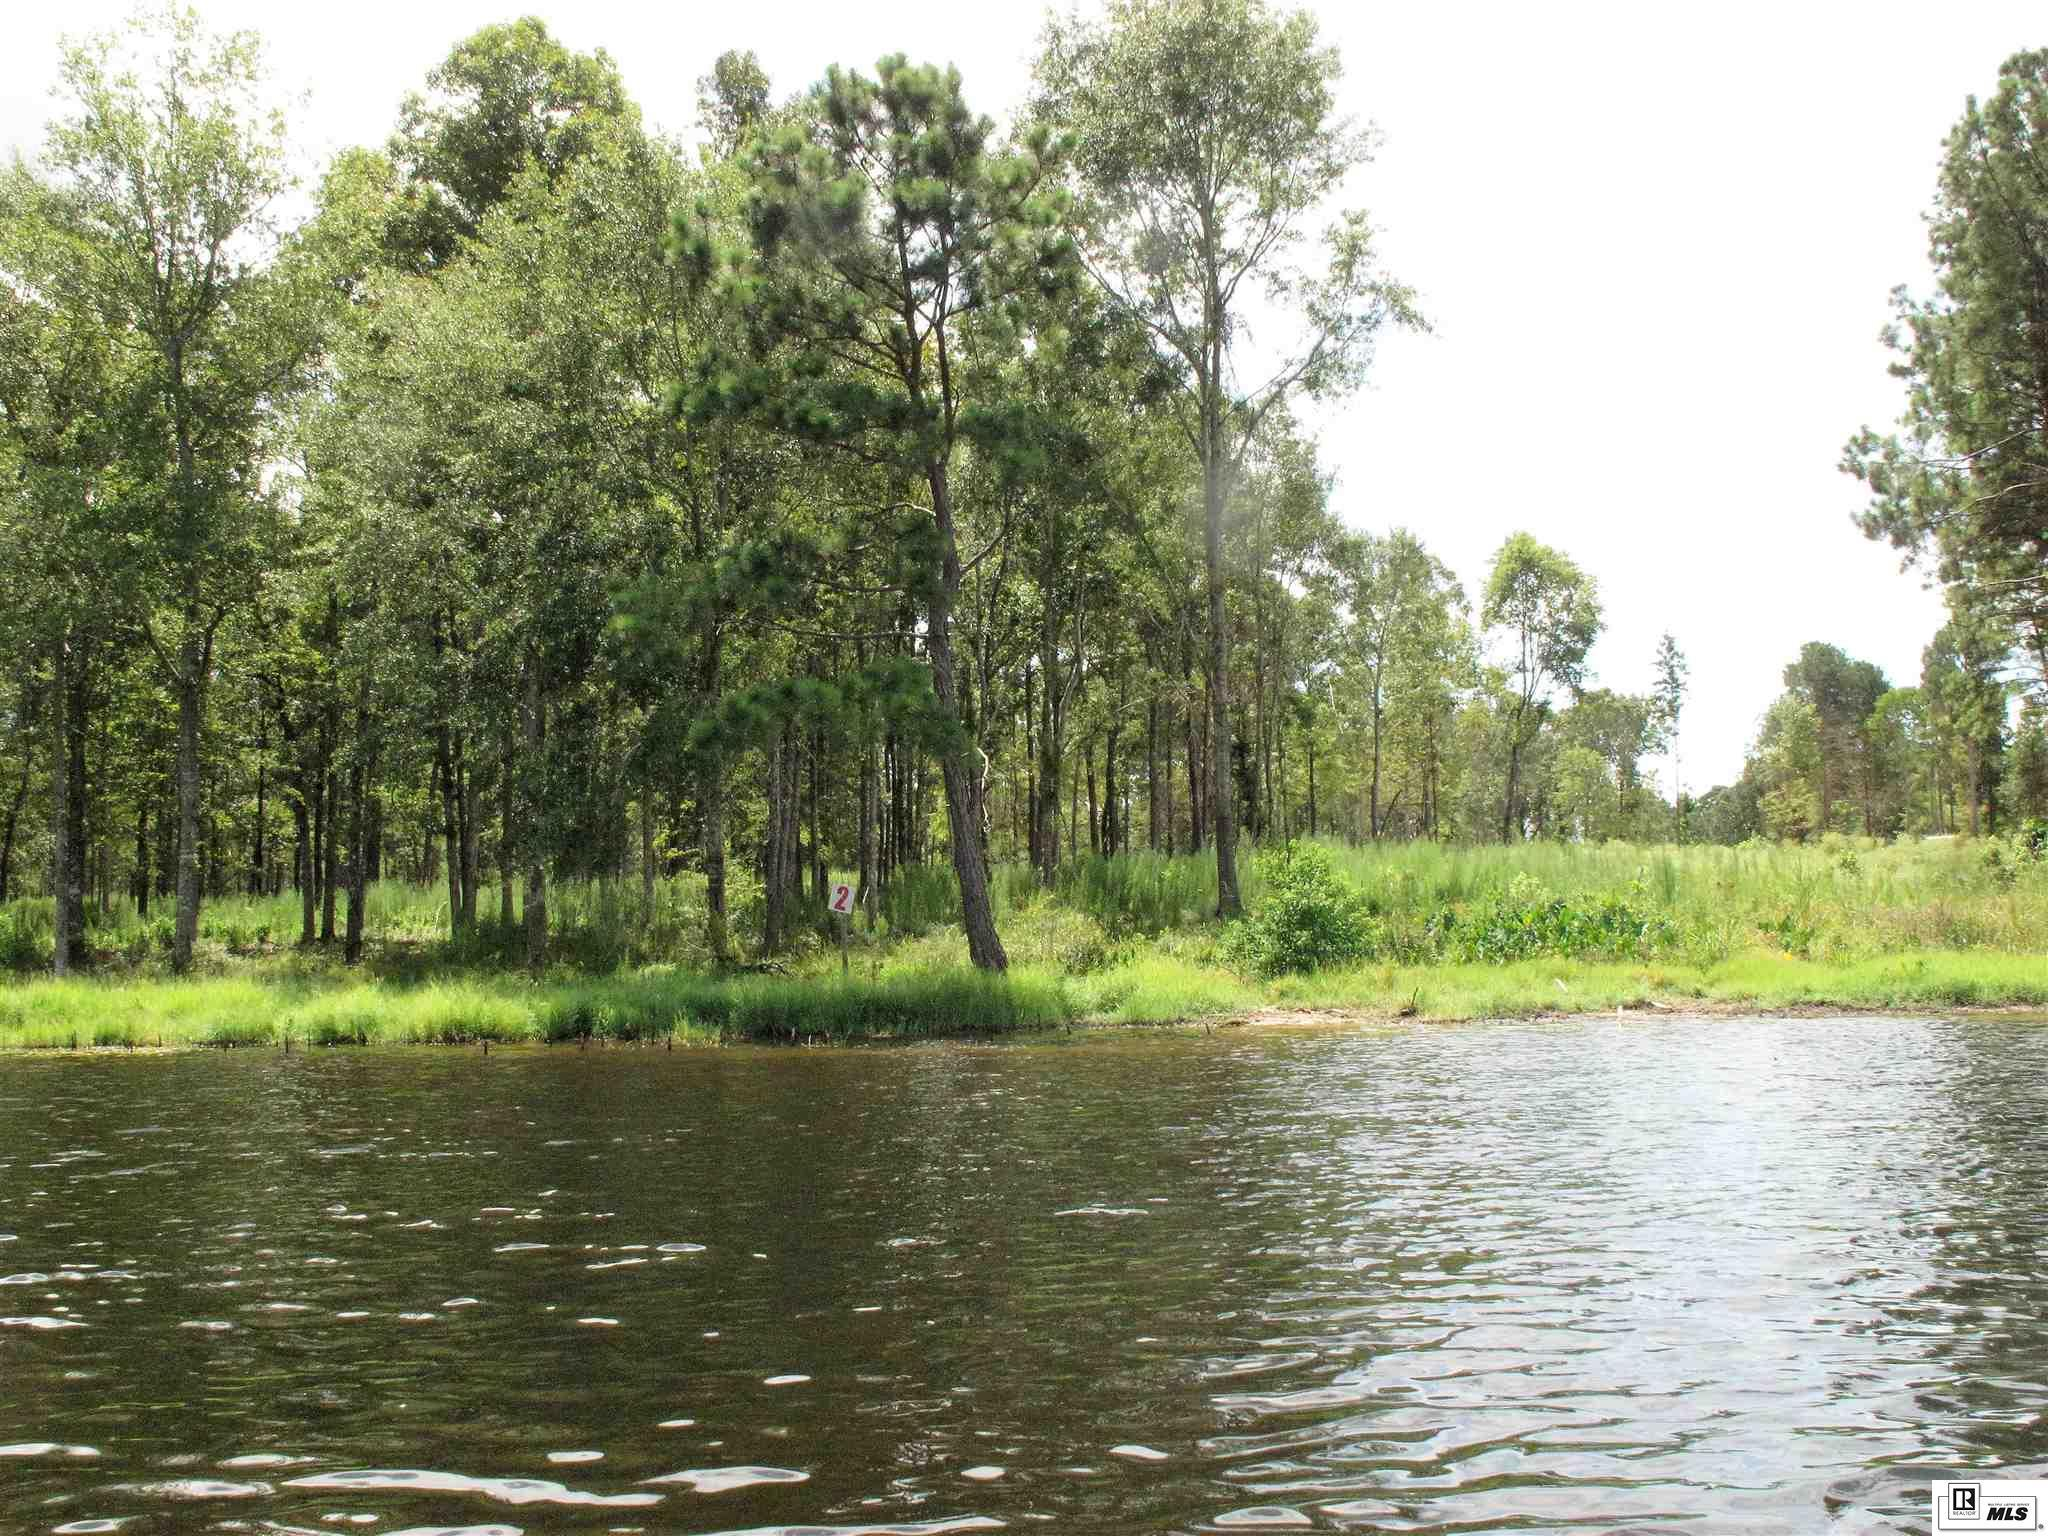 306 DOCTOR'S POINT DRIVE, 401 Caney Lake Area